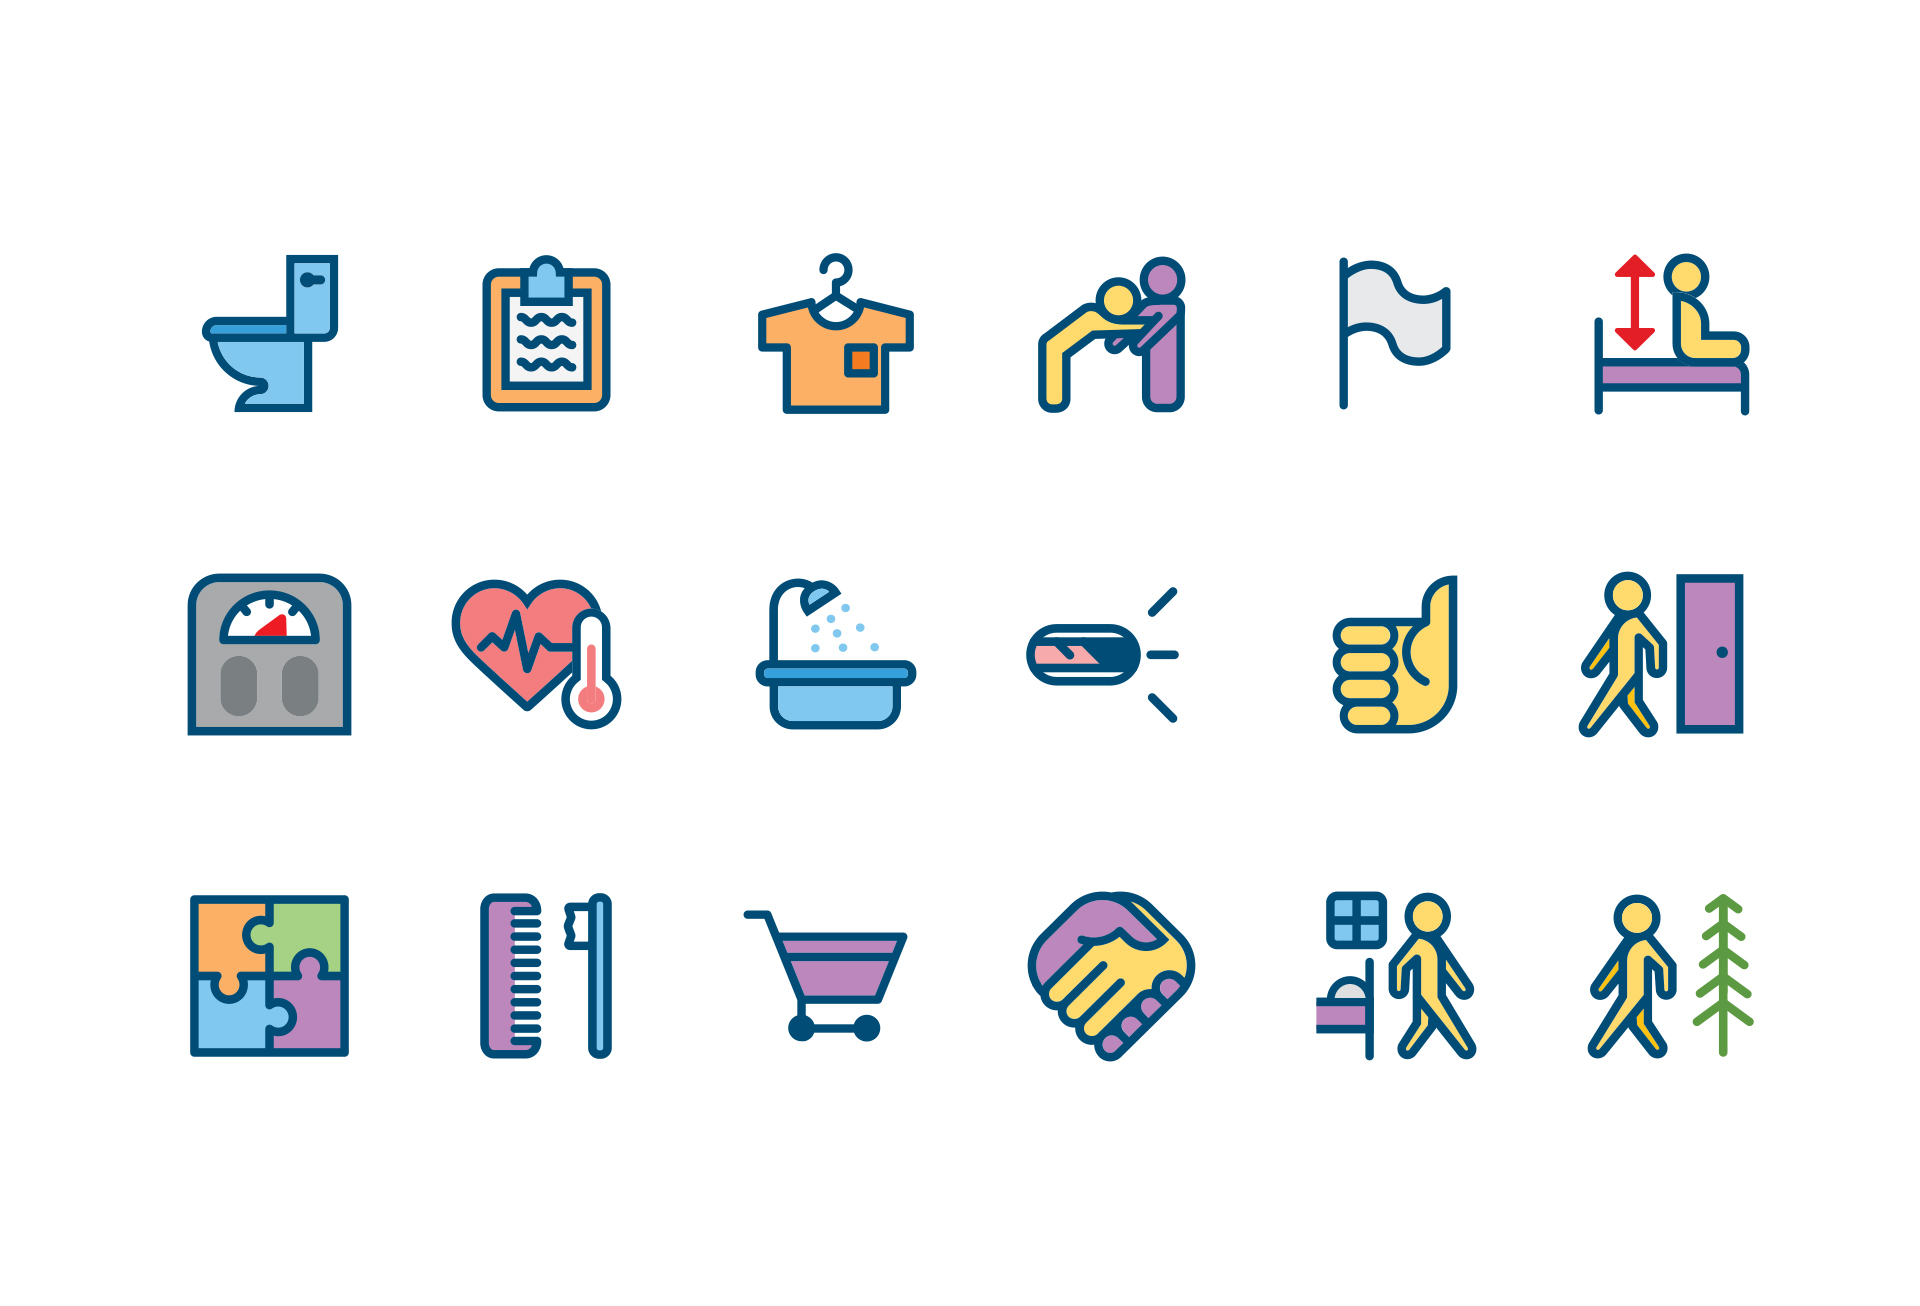 I created an icon design system to replace 50+ symbols used in an app for tracking the health of long term care patients. Each one is big, bold, and unique to make manual data entry quick and easy.